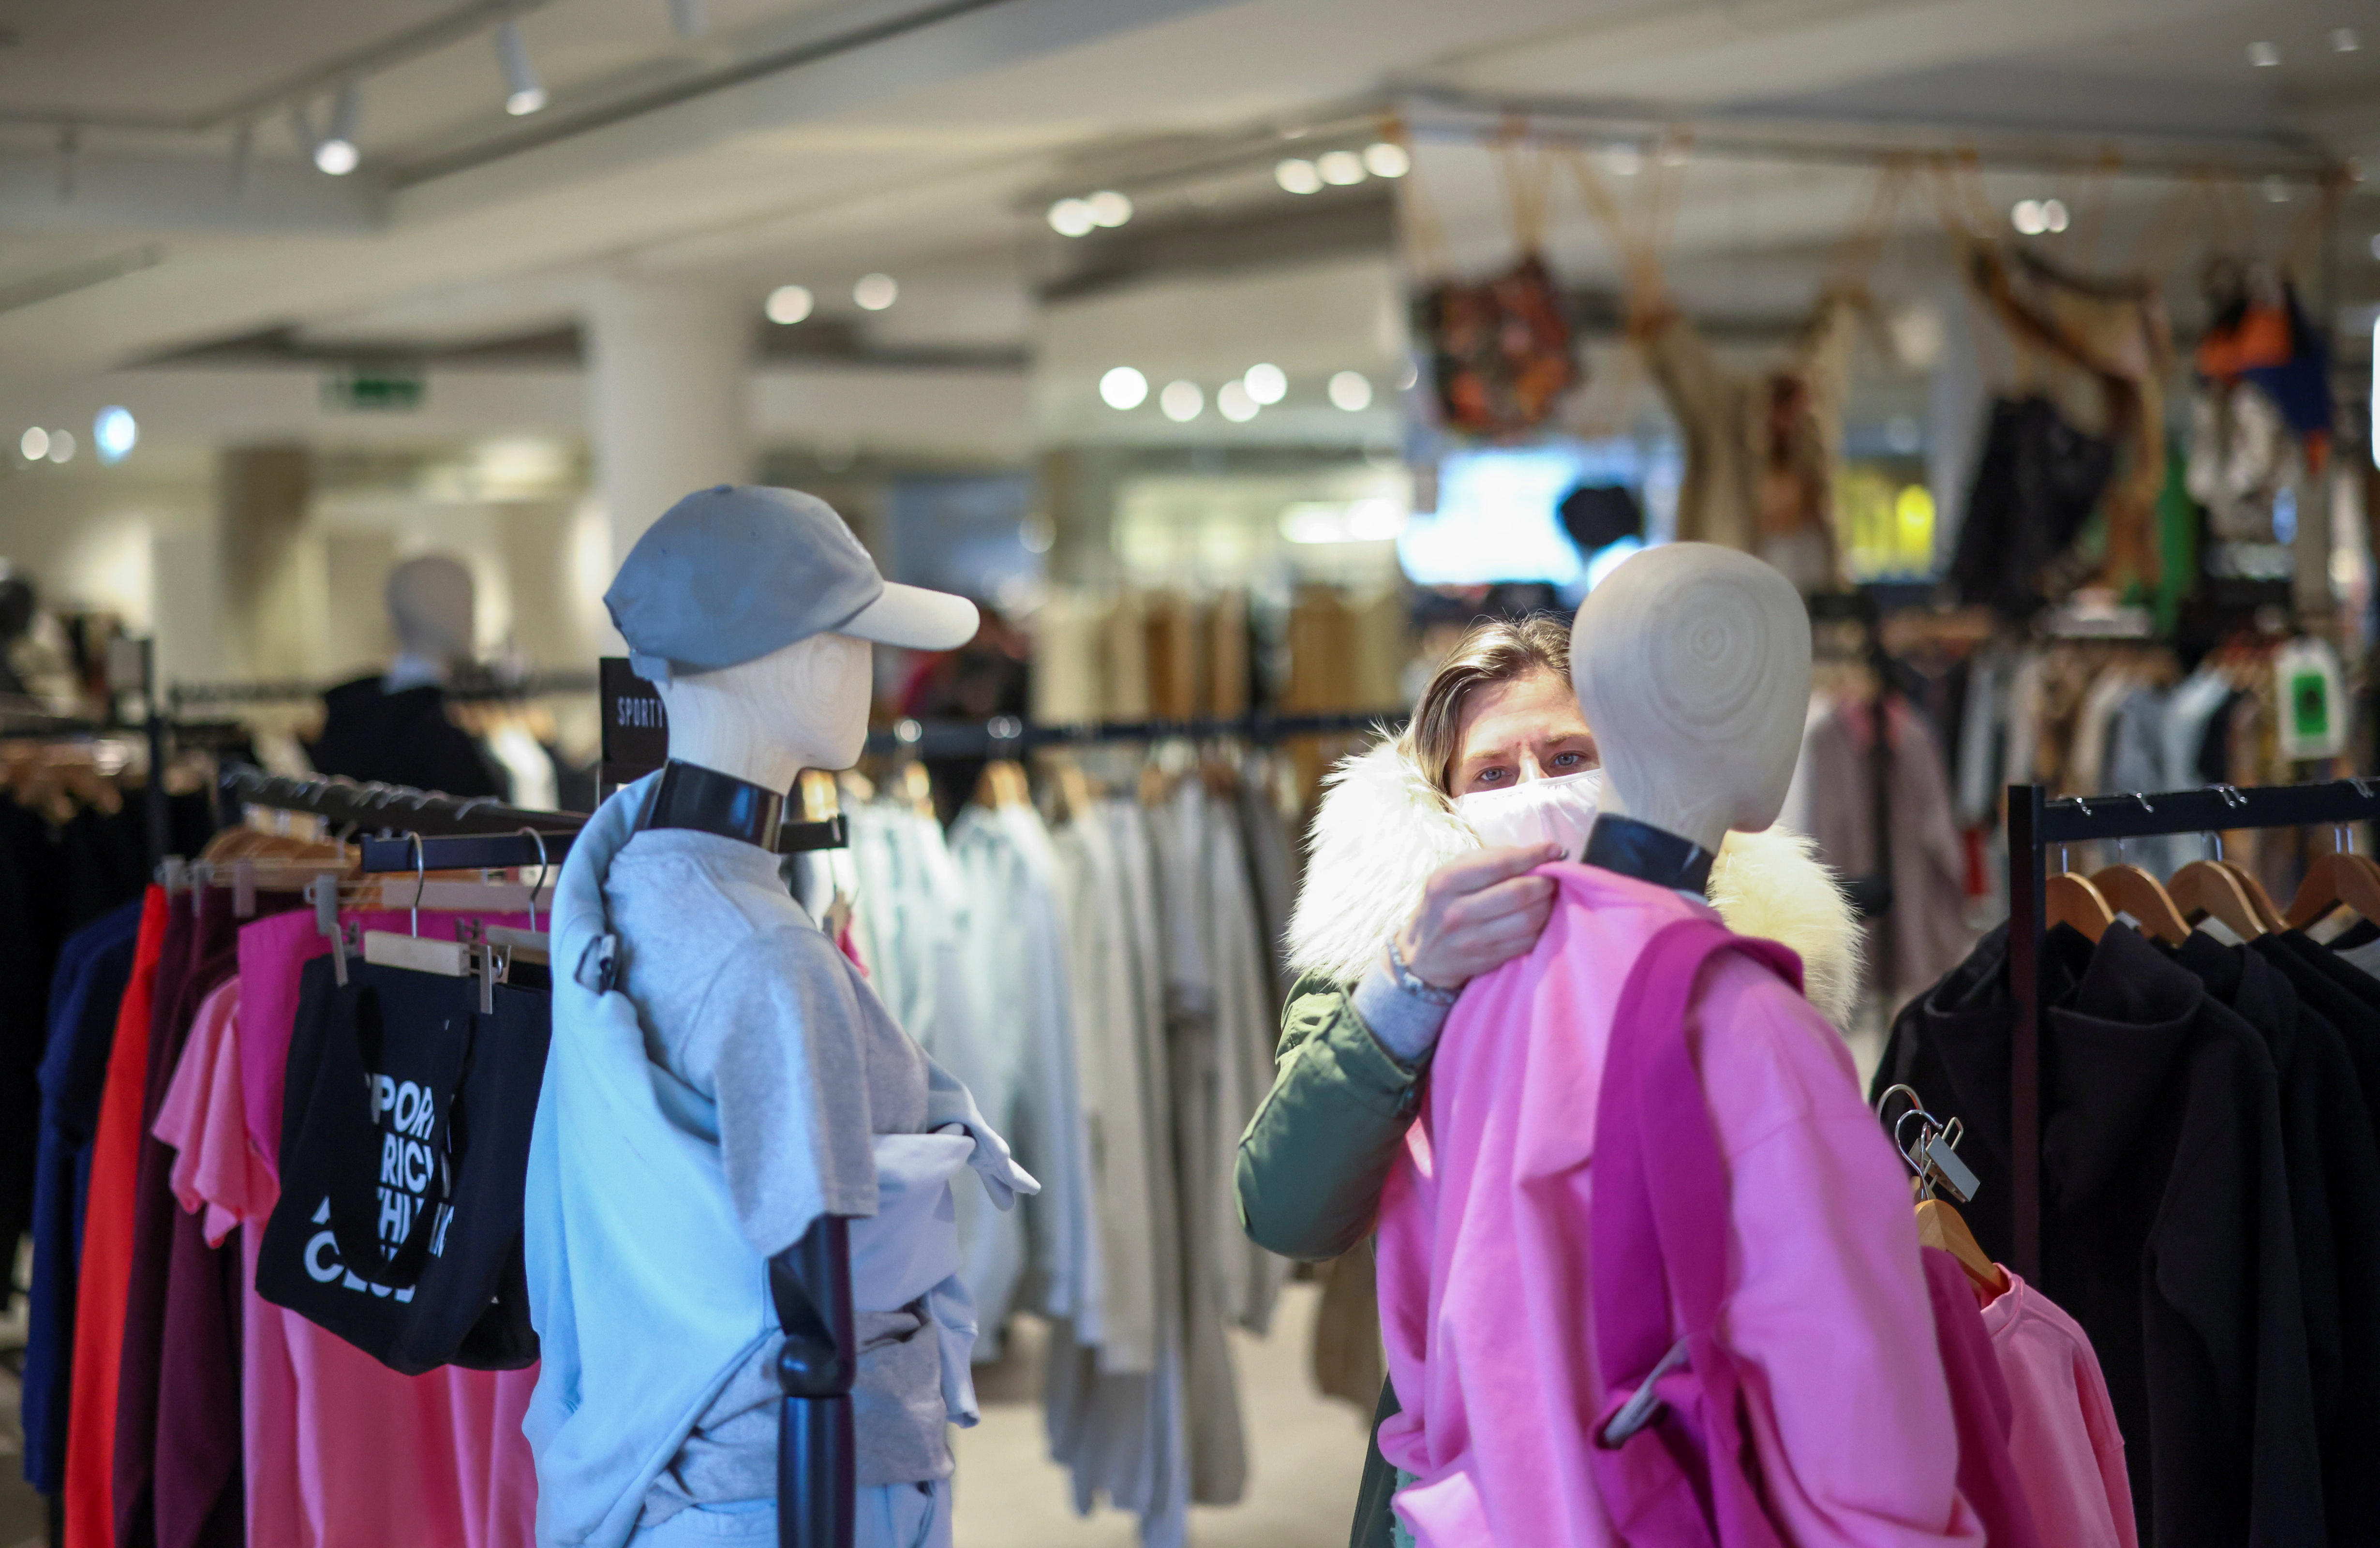 A woman shops in the Selfridges department store on Oxford street, as the coronavirus disease (COVID-19) restrictions ease, in London, Britain April 12, 2021. REUTERS/Henry Nicholls